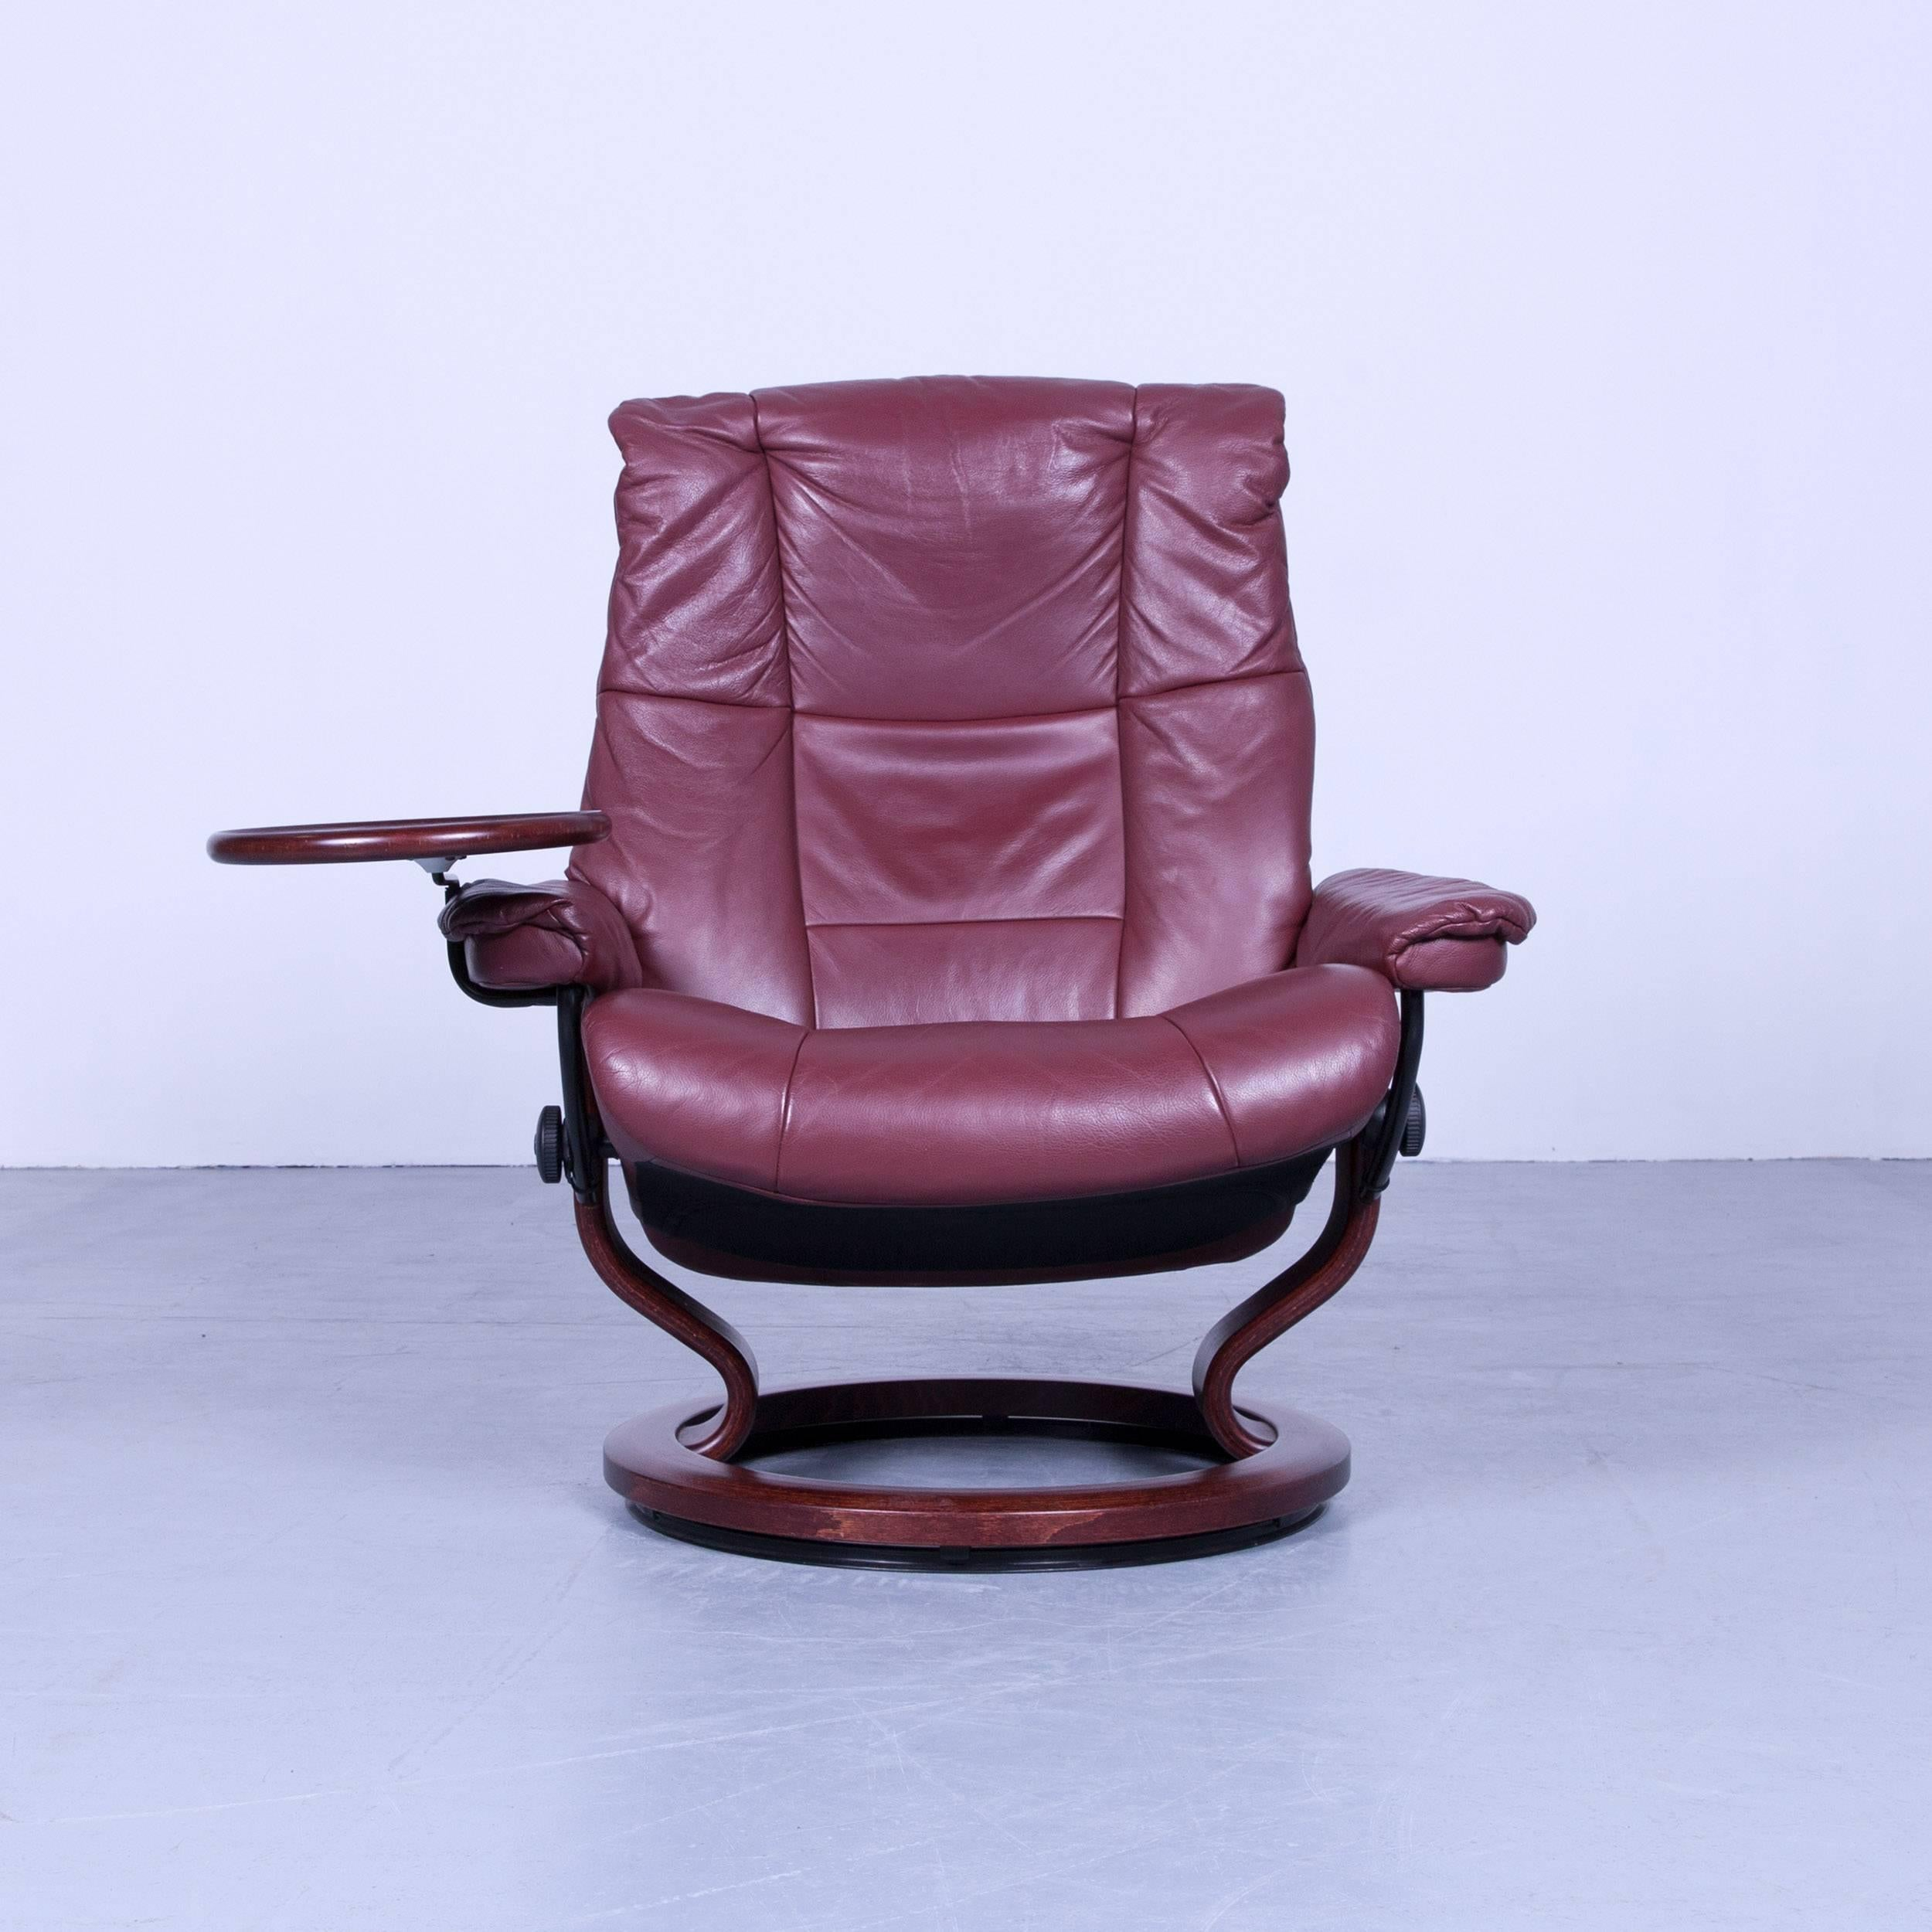 Stressless Ekornes Sessel Ekornes Stressless Mayfair Armchair And Footstool Red Leather Recliner Chair